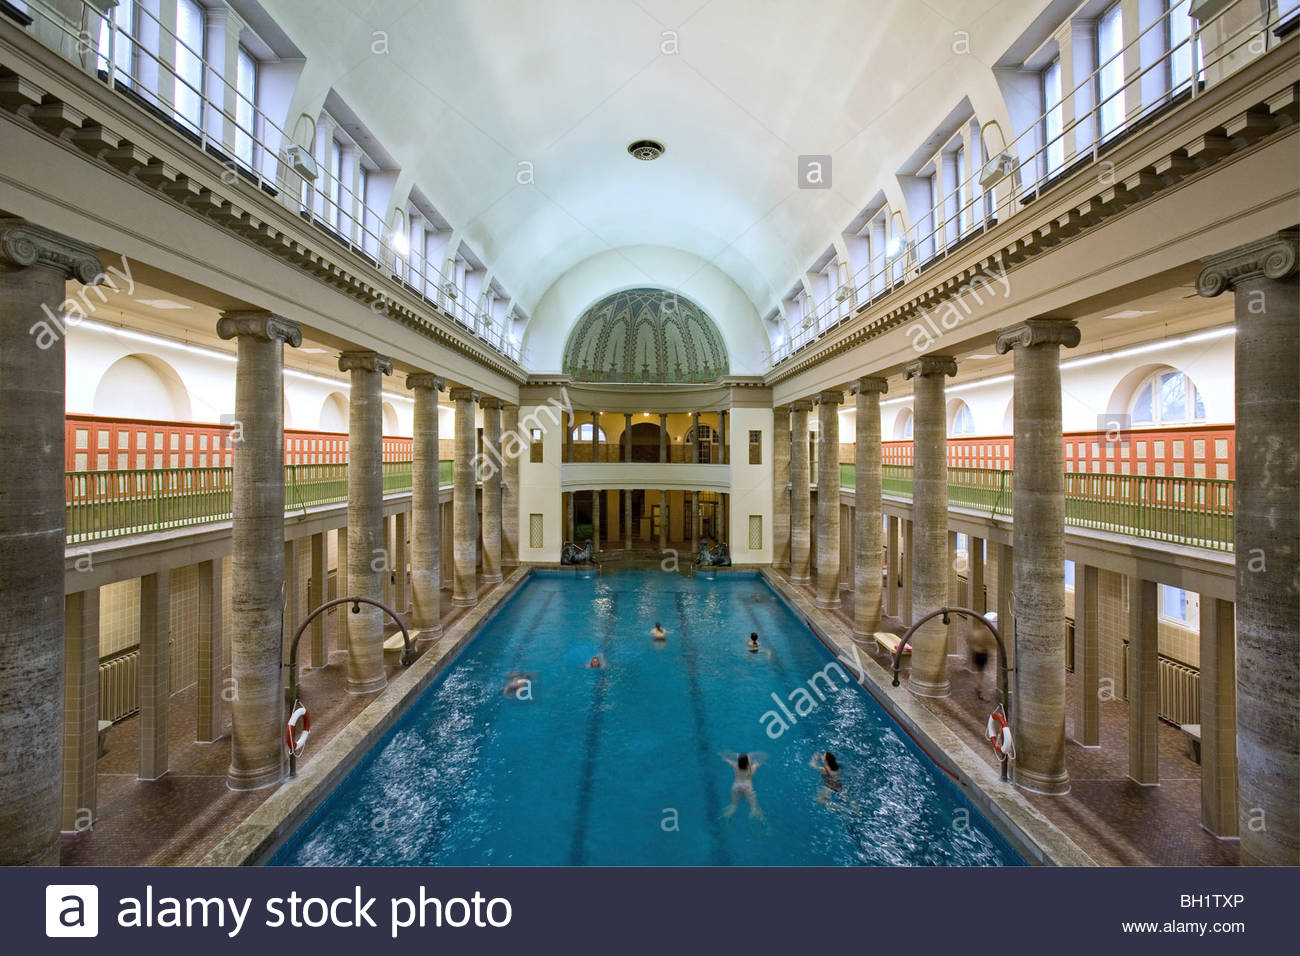 stadtbad neukoelln opened in 1914 roman style baths berlin stock photo royalty free image. Black Bedroom Furniture Sets. Home Design Ideas